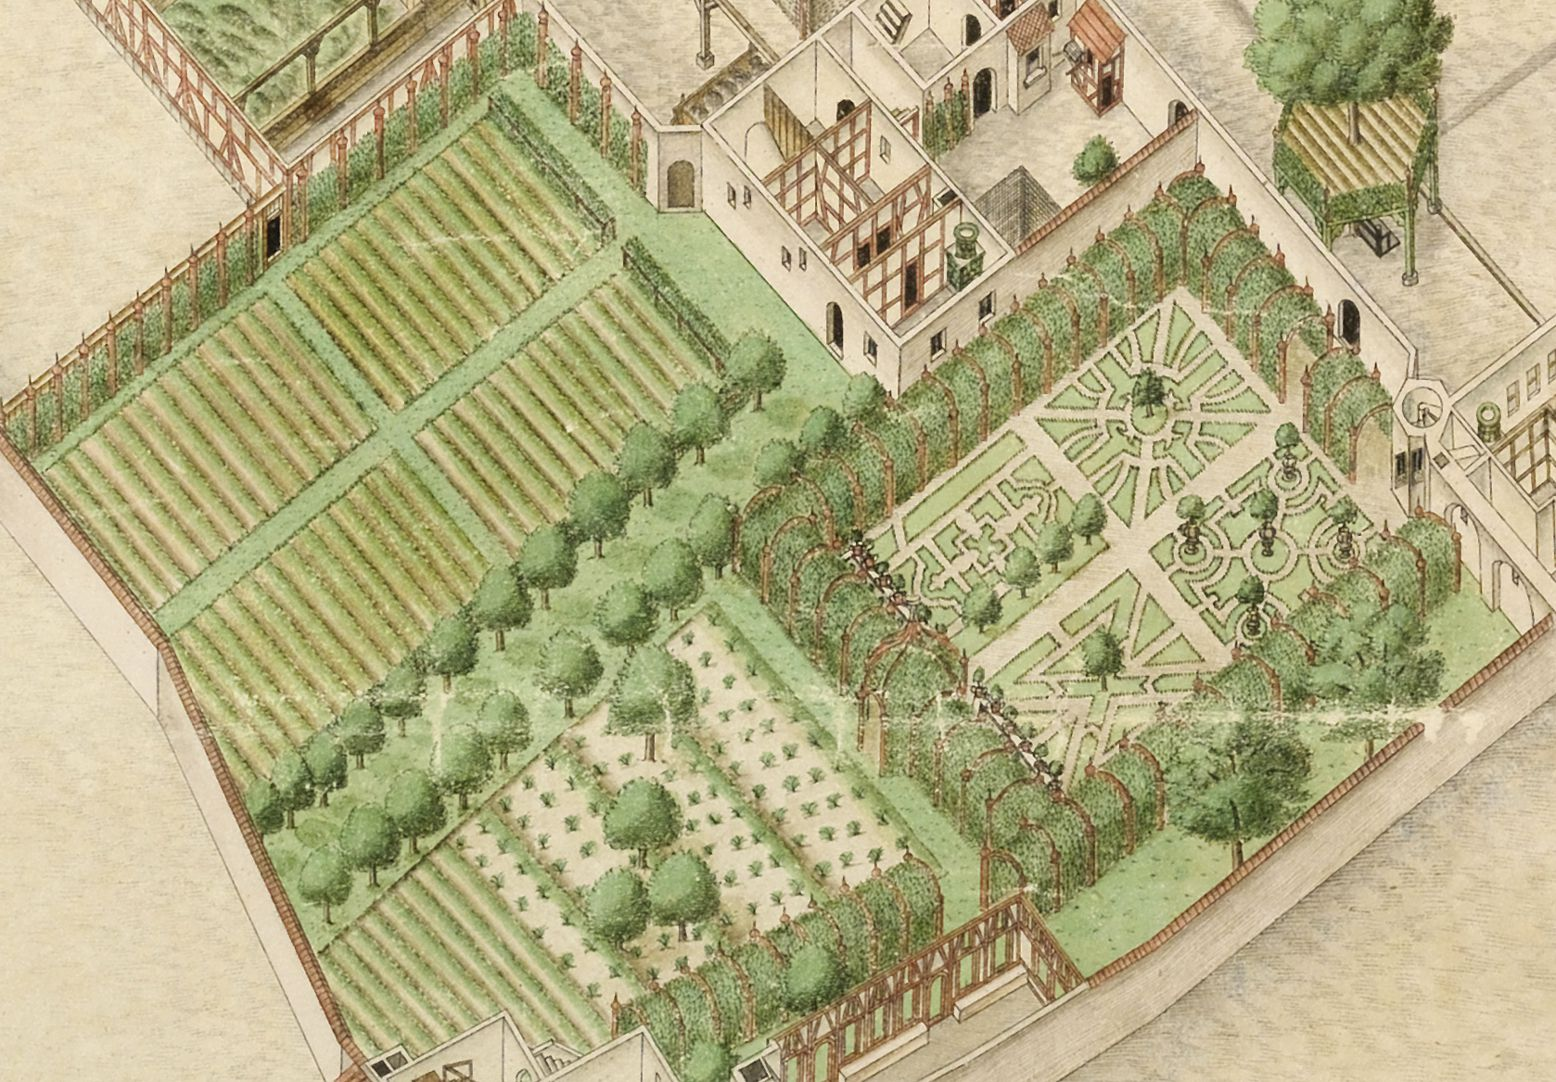 Isometric Picture of the whole plan of the German House in Nuremberg with view into the ground floors Flower and kitchen gardens